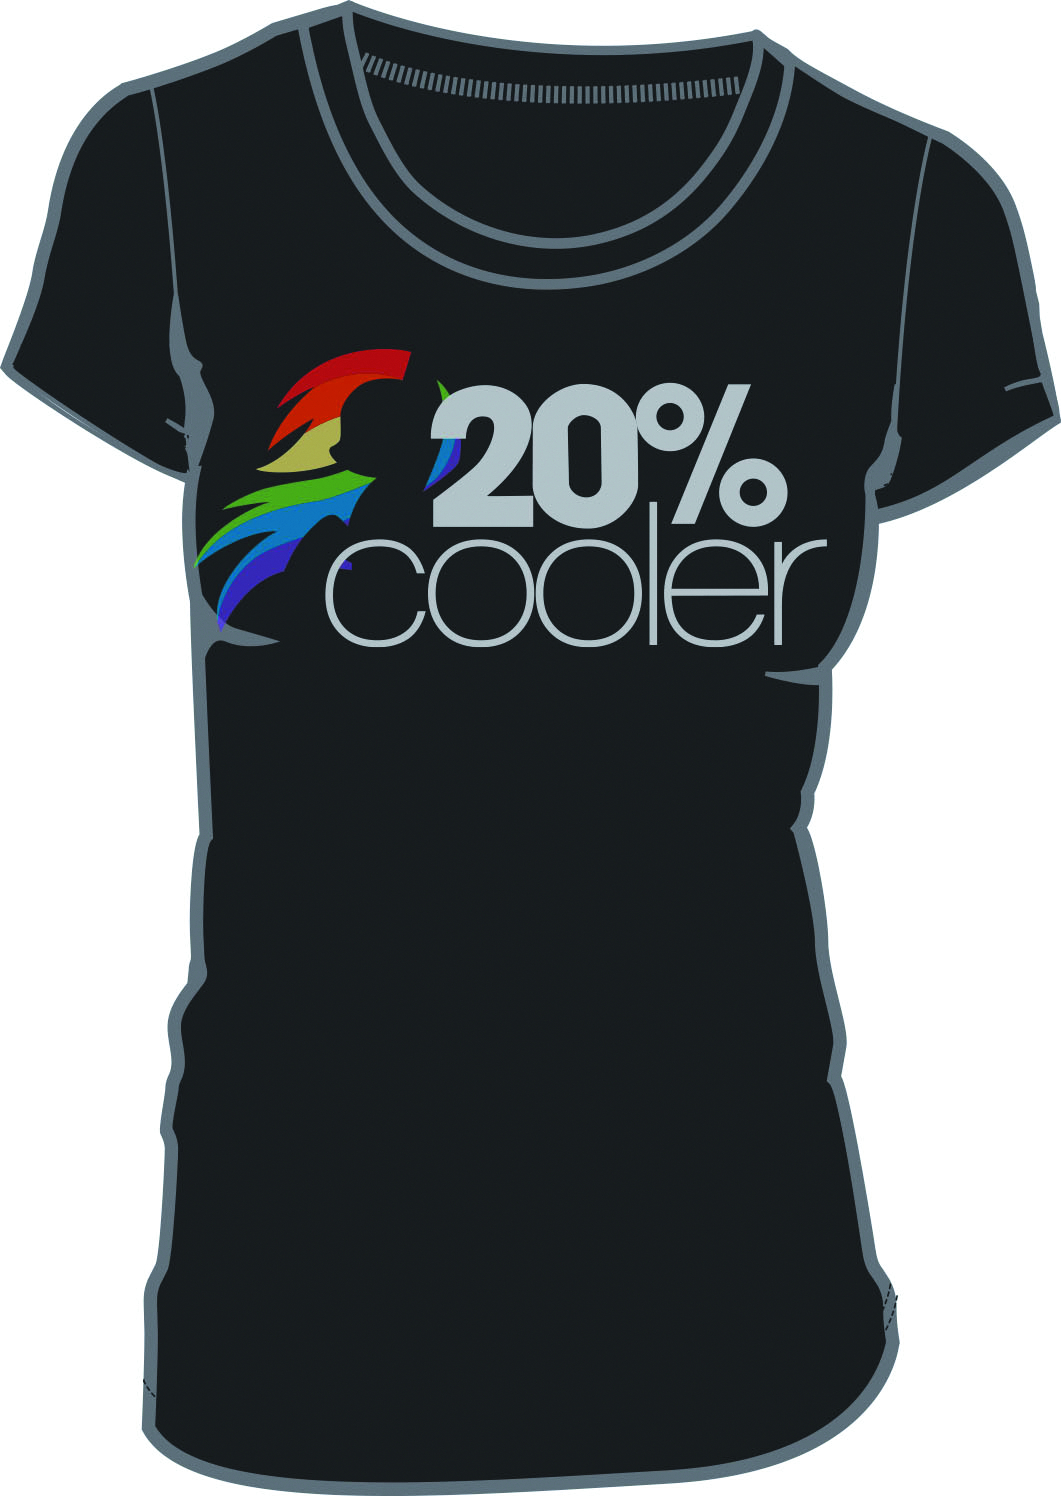 MY LITTLE PONY 20% COOLER BLK JRS T/S LG